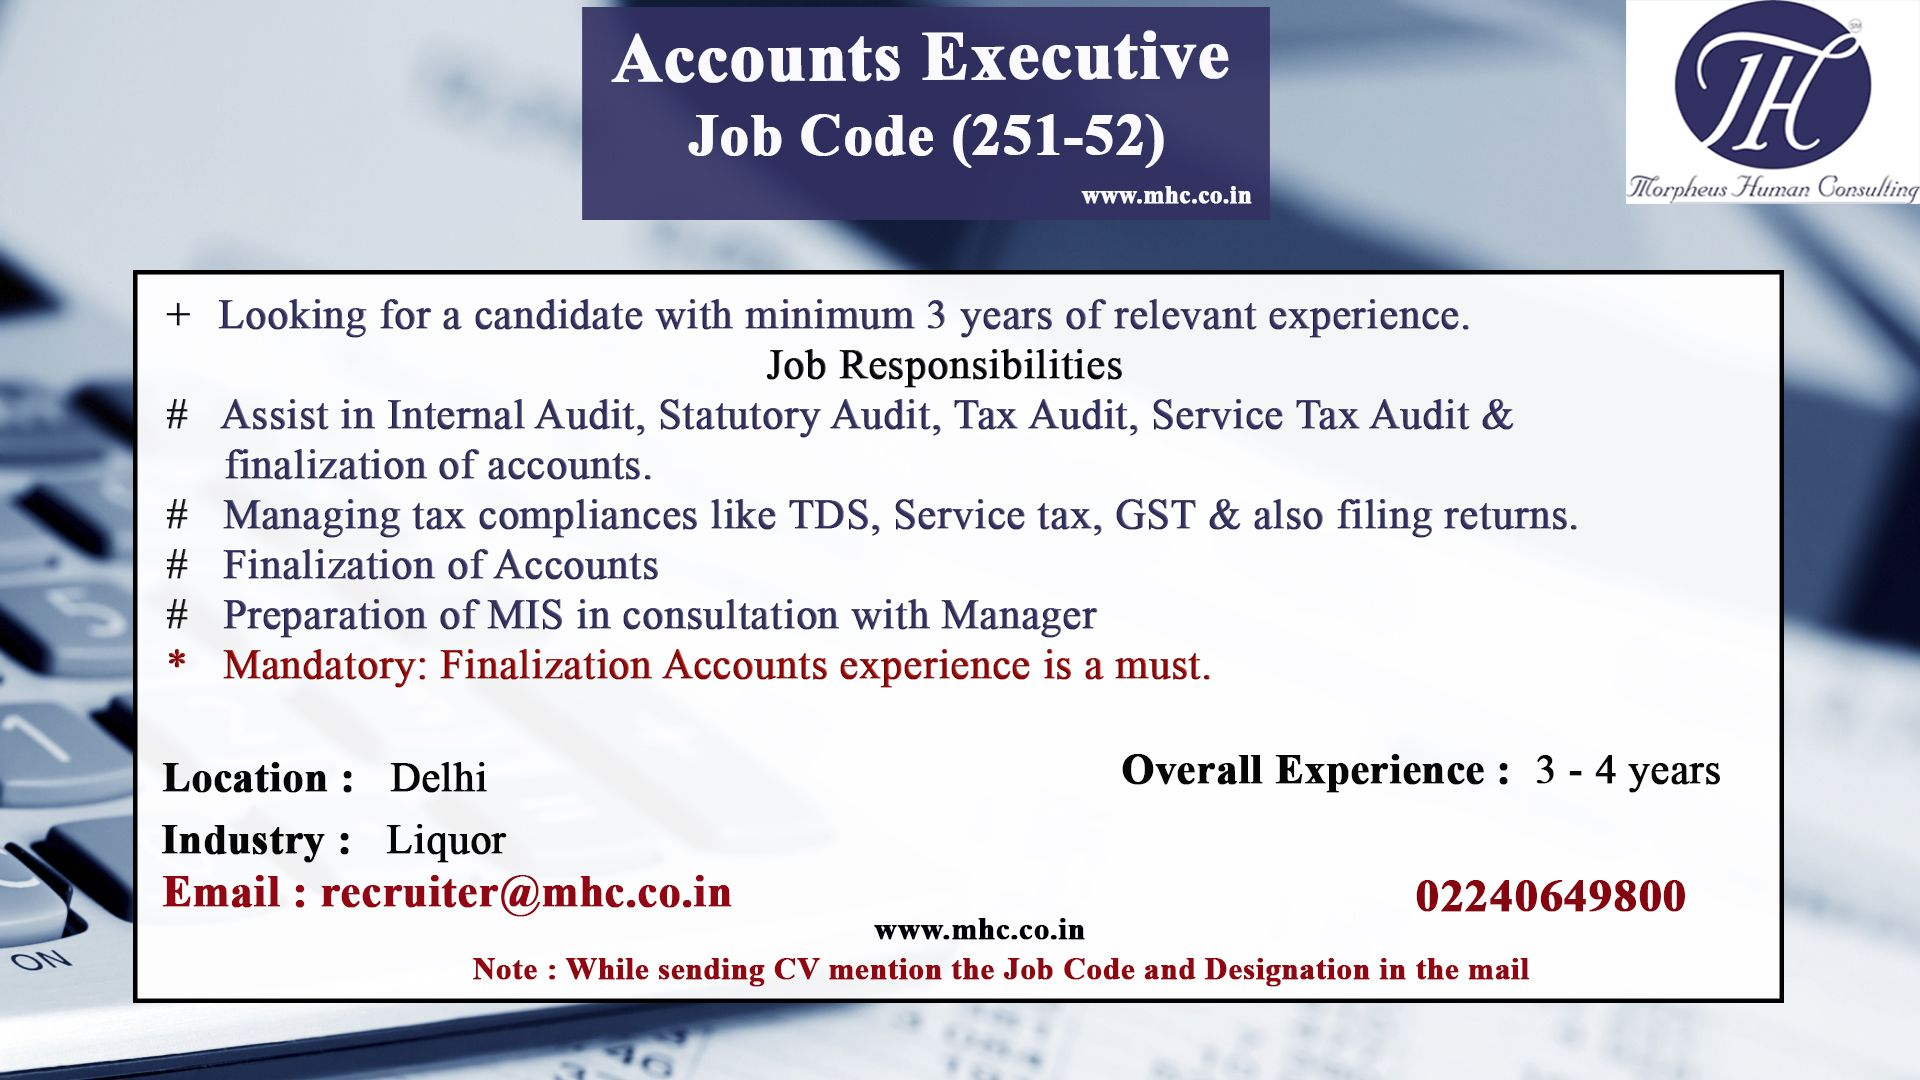 We are looking for a accounts executive for our client